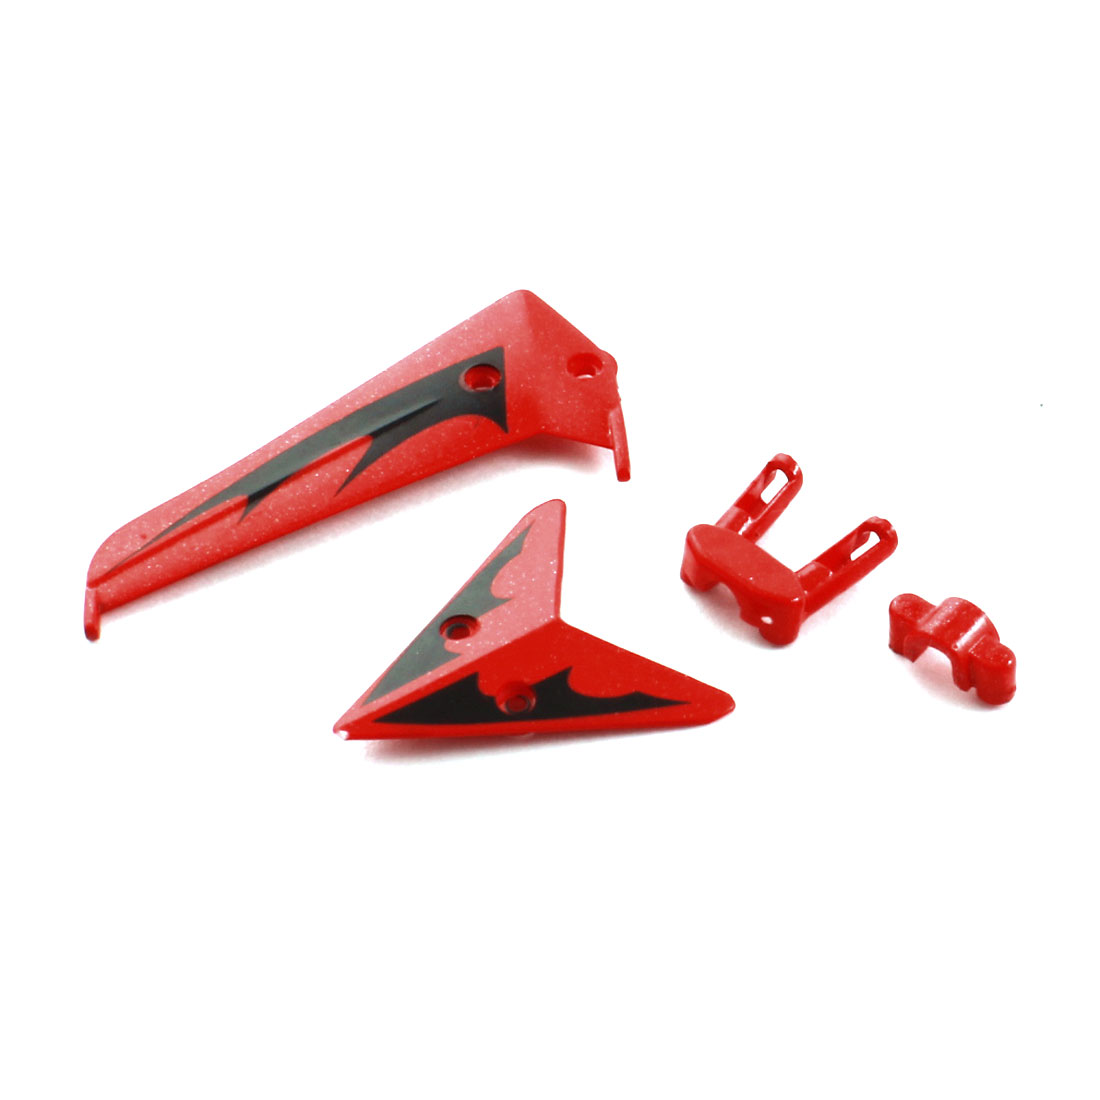 Red Plastic Tail Decorative Balance Vane Set Replacement for Syma S107G-02 Helicopter